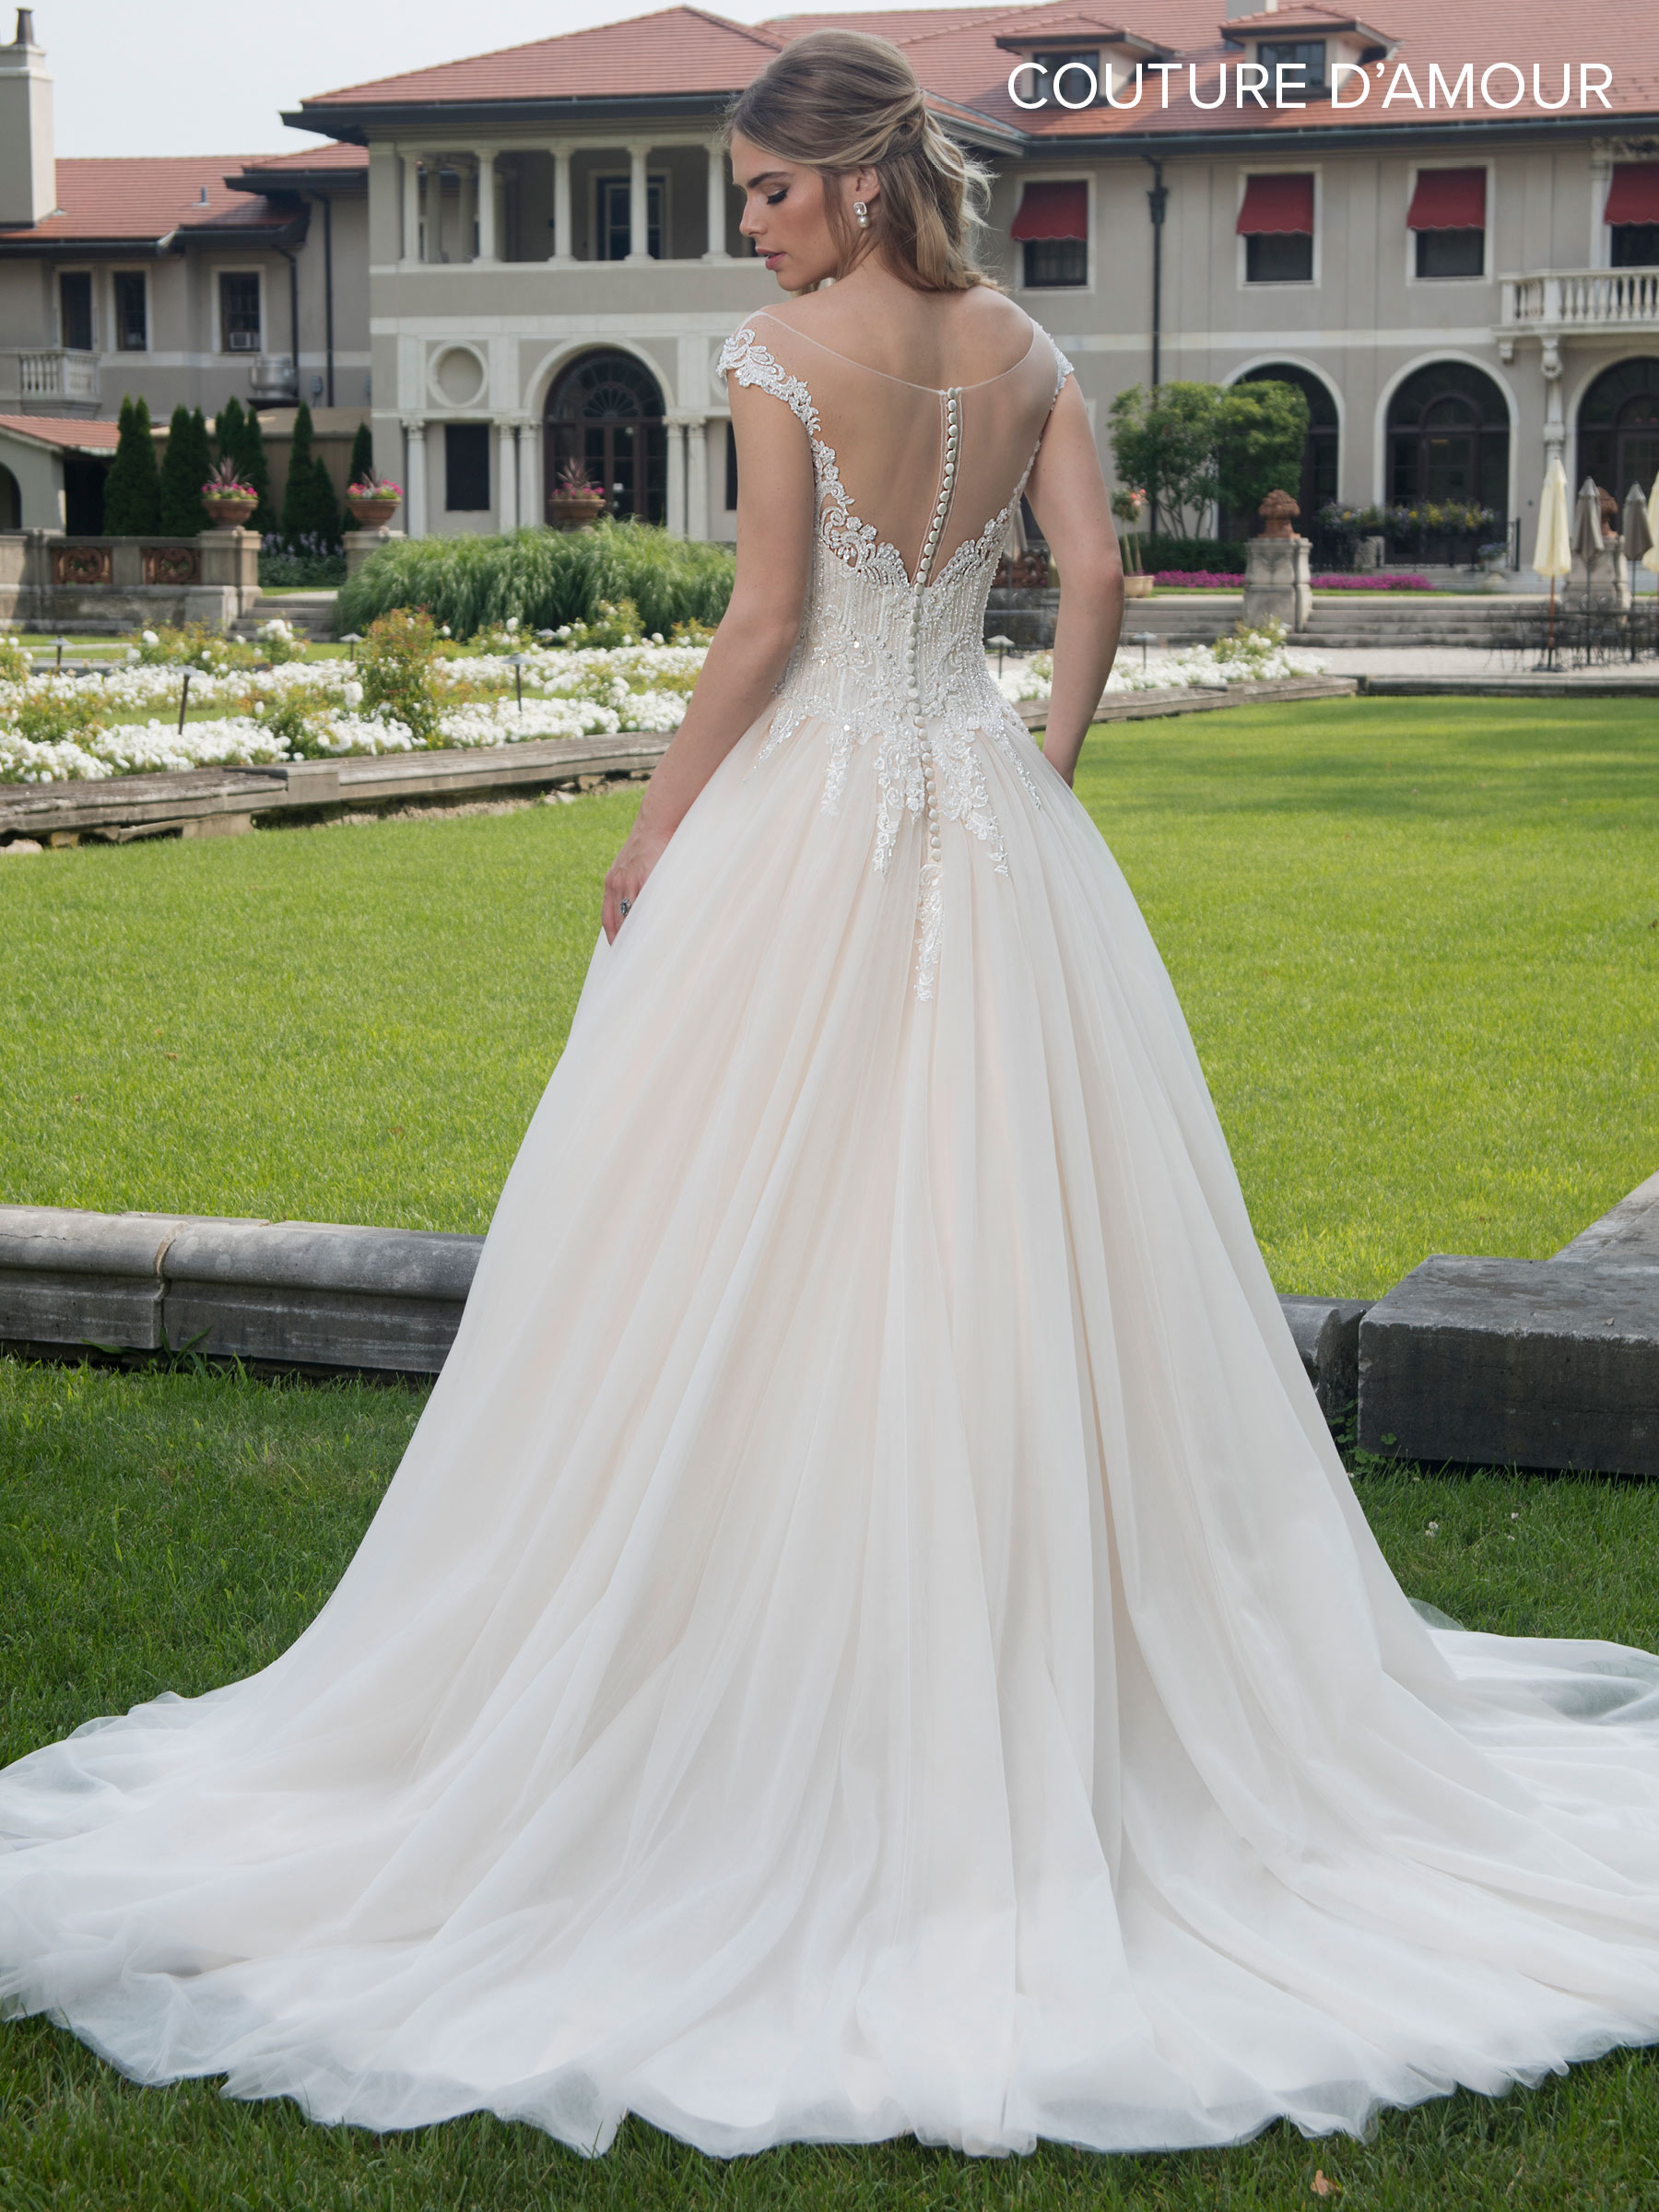 Couture Damour Bridal Dresses | Couture d'Amour | Style - MB4003